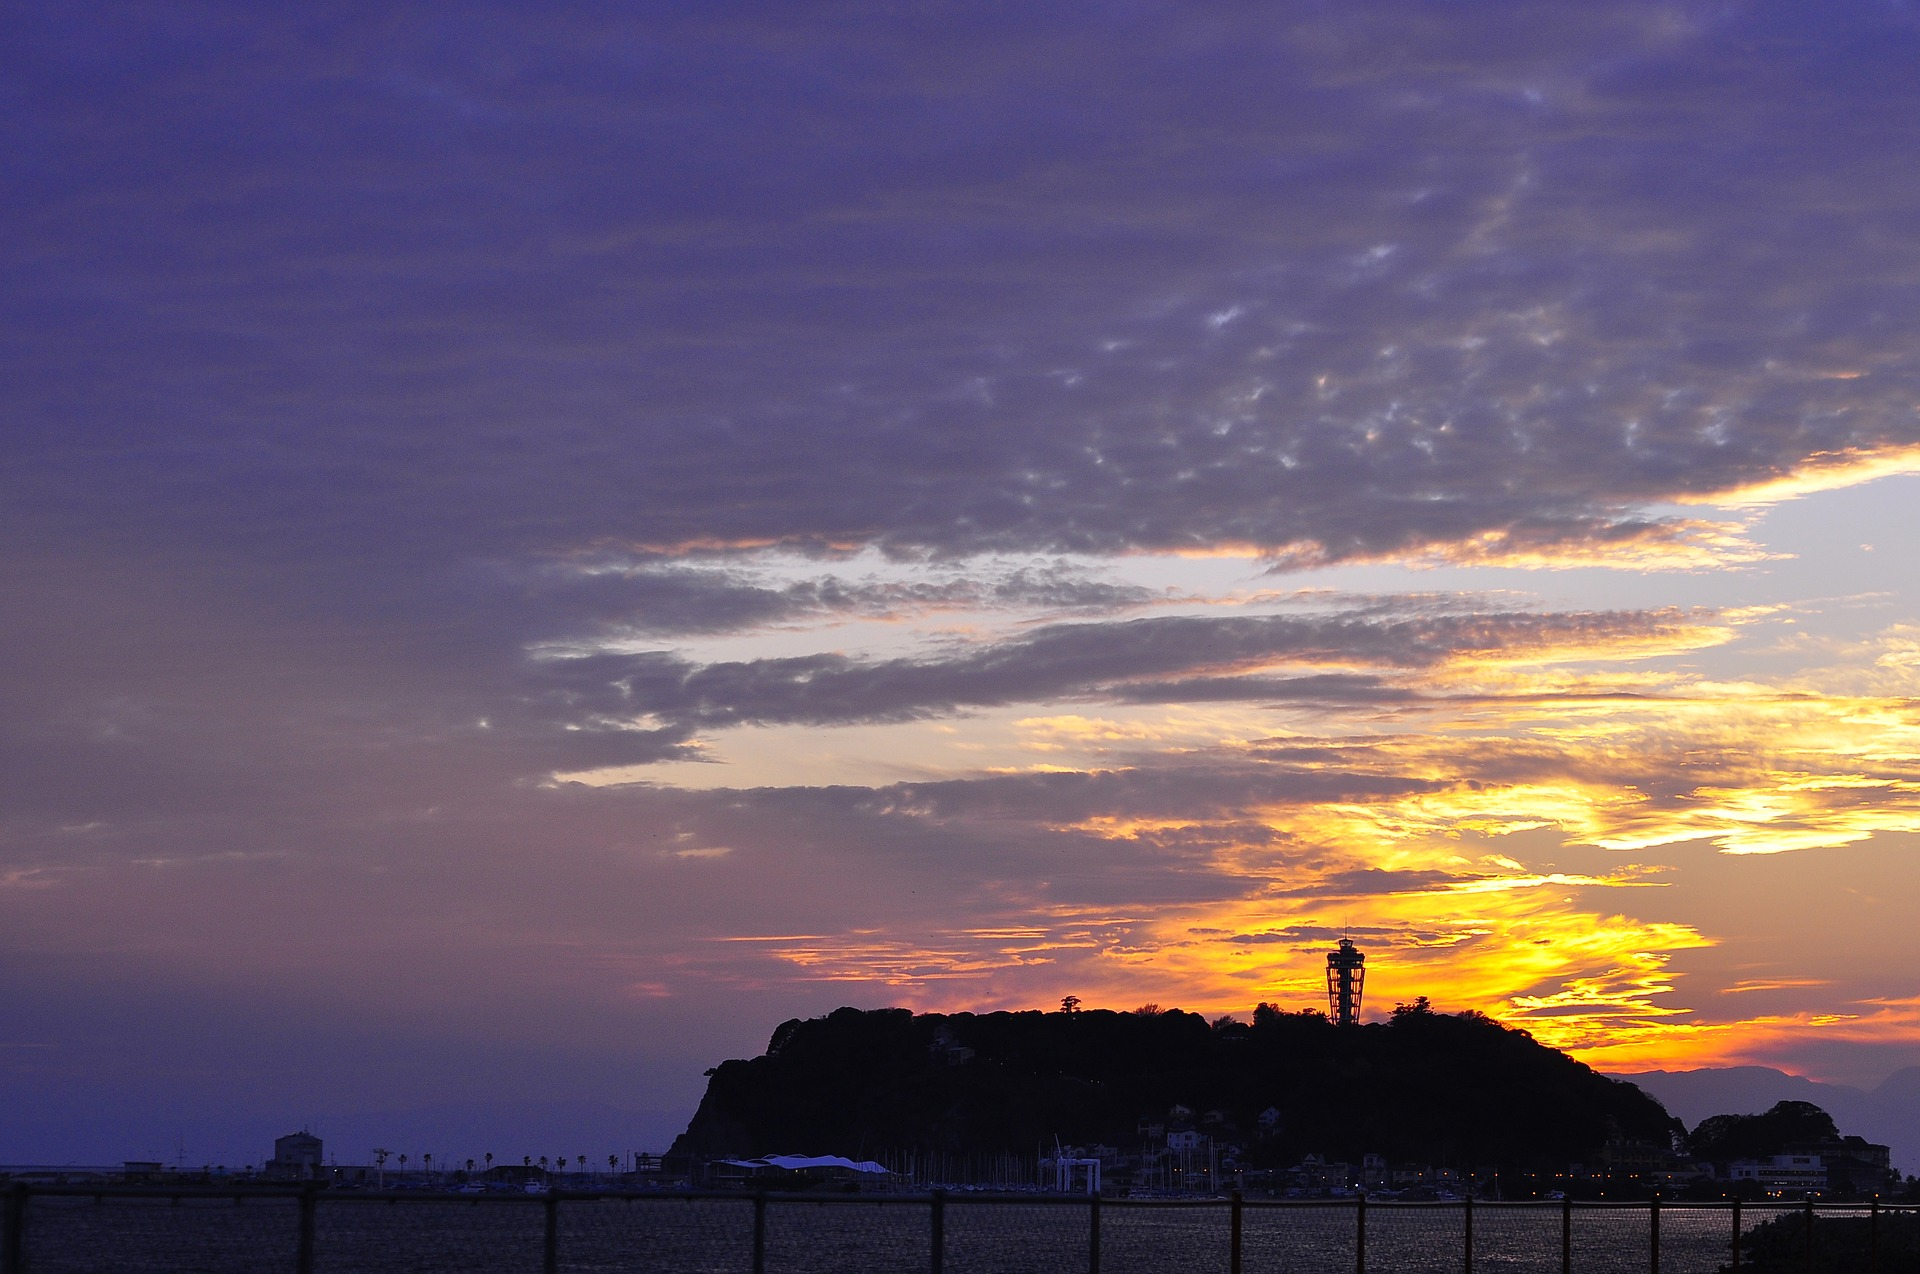 Sunset with enoshima island in the background